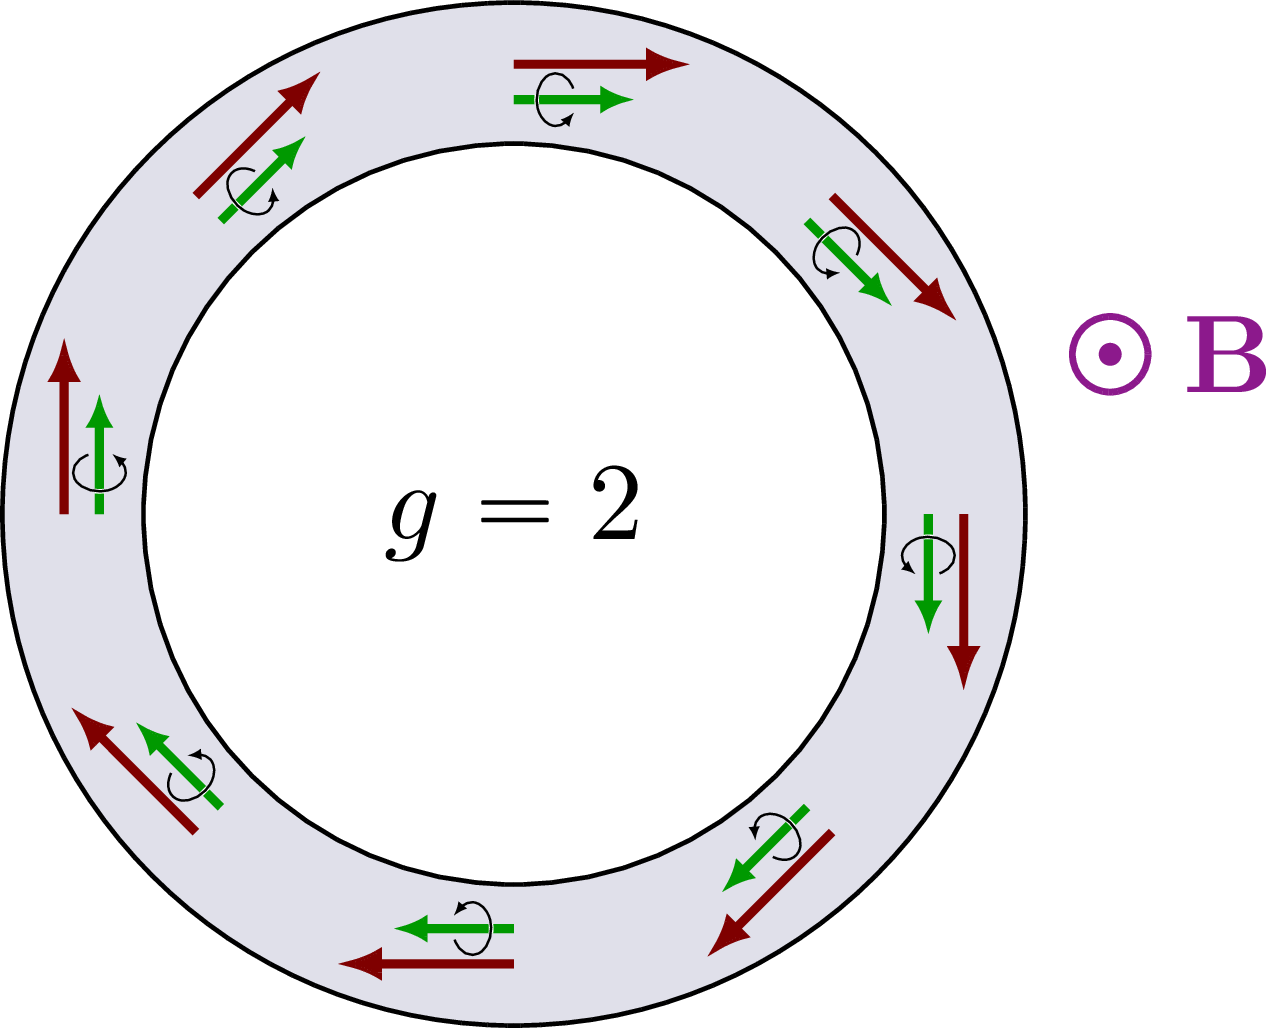 muon_g-2-003.png